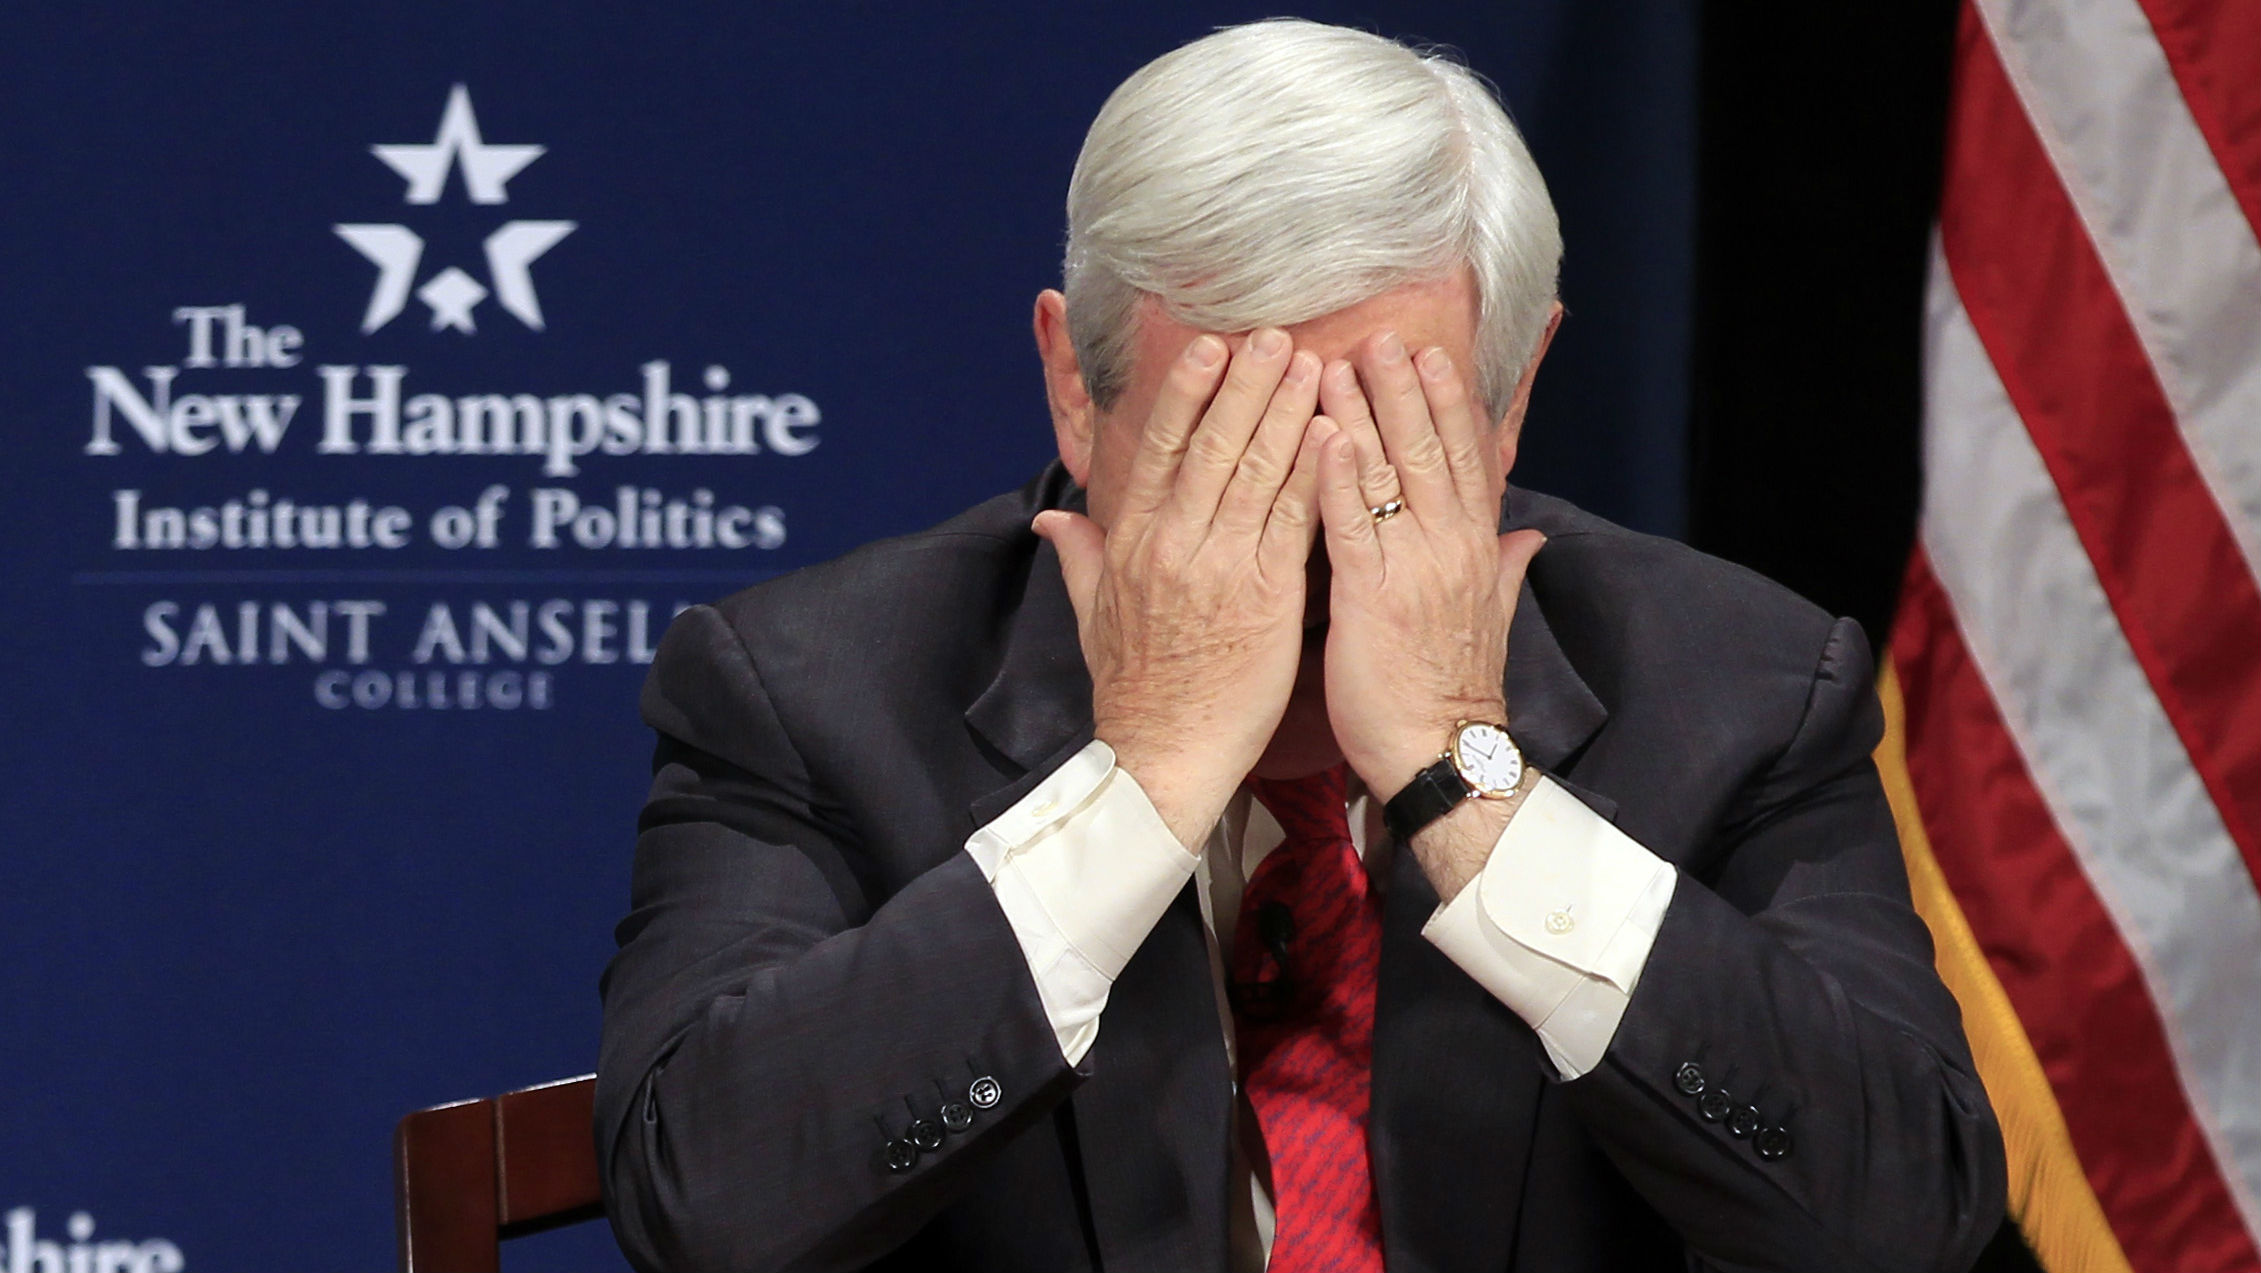 Newt Gingrich holds his head in his hands.